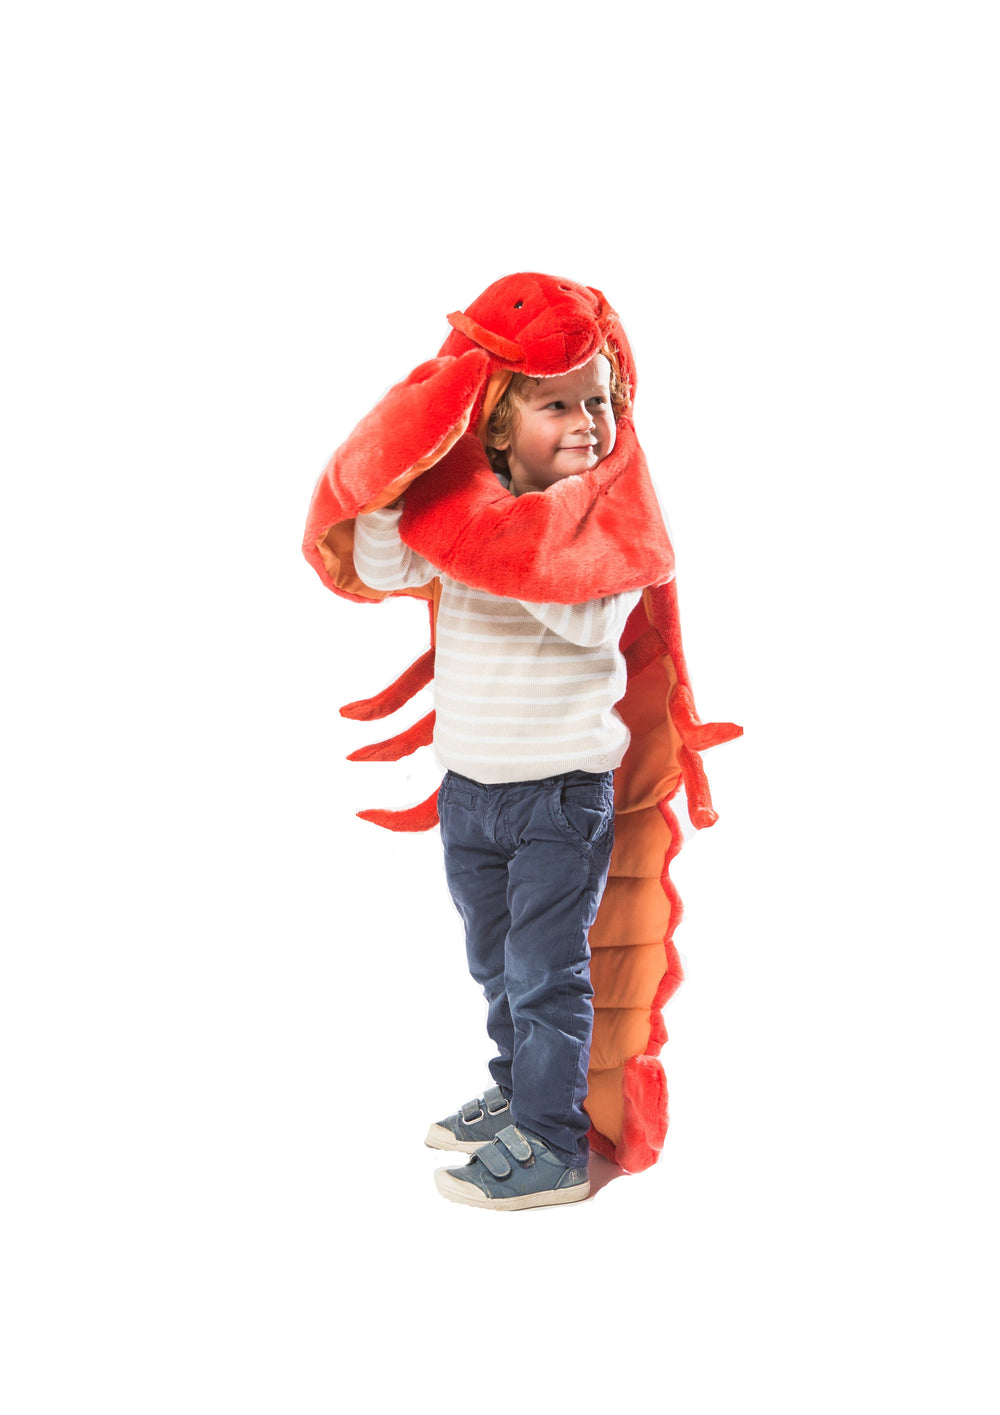 Lobster disguise